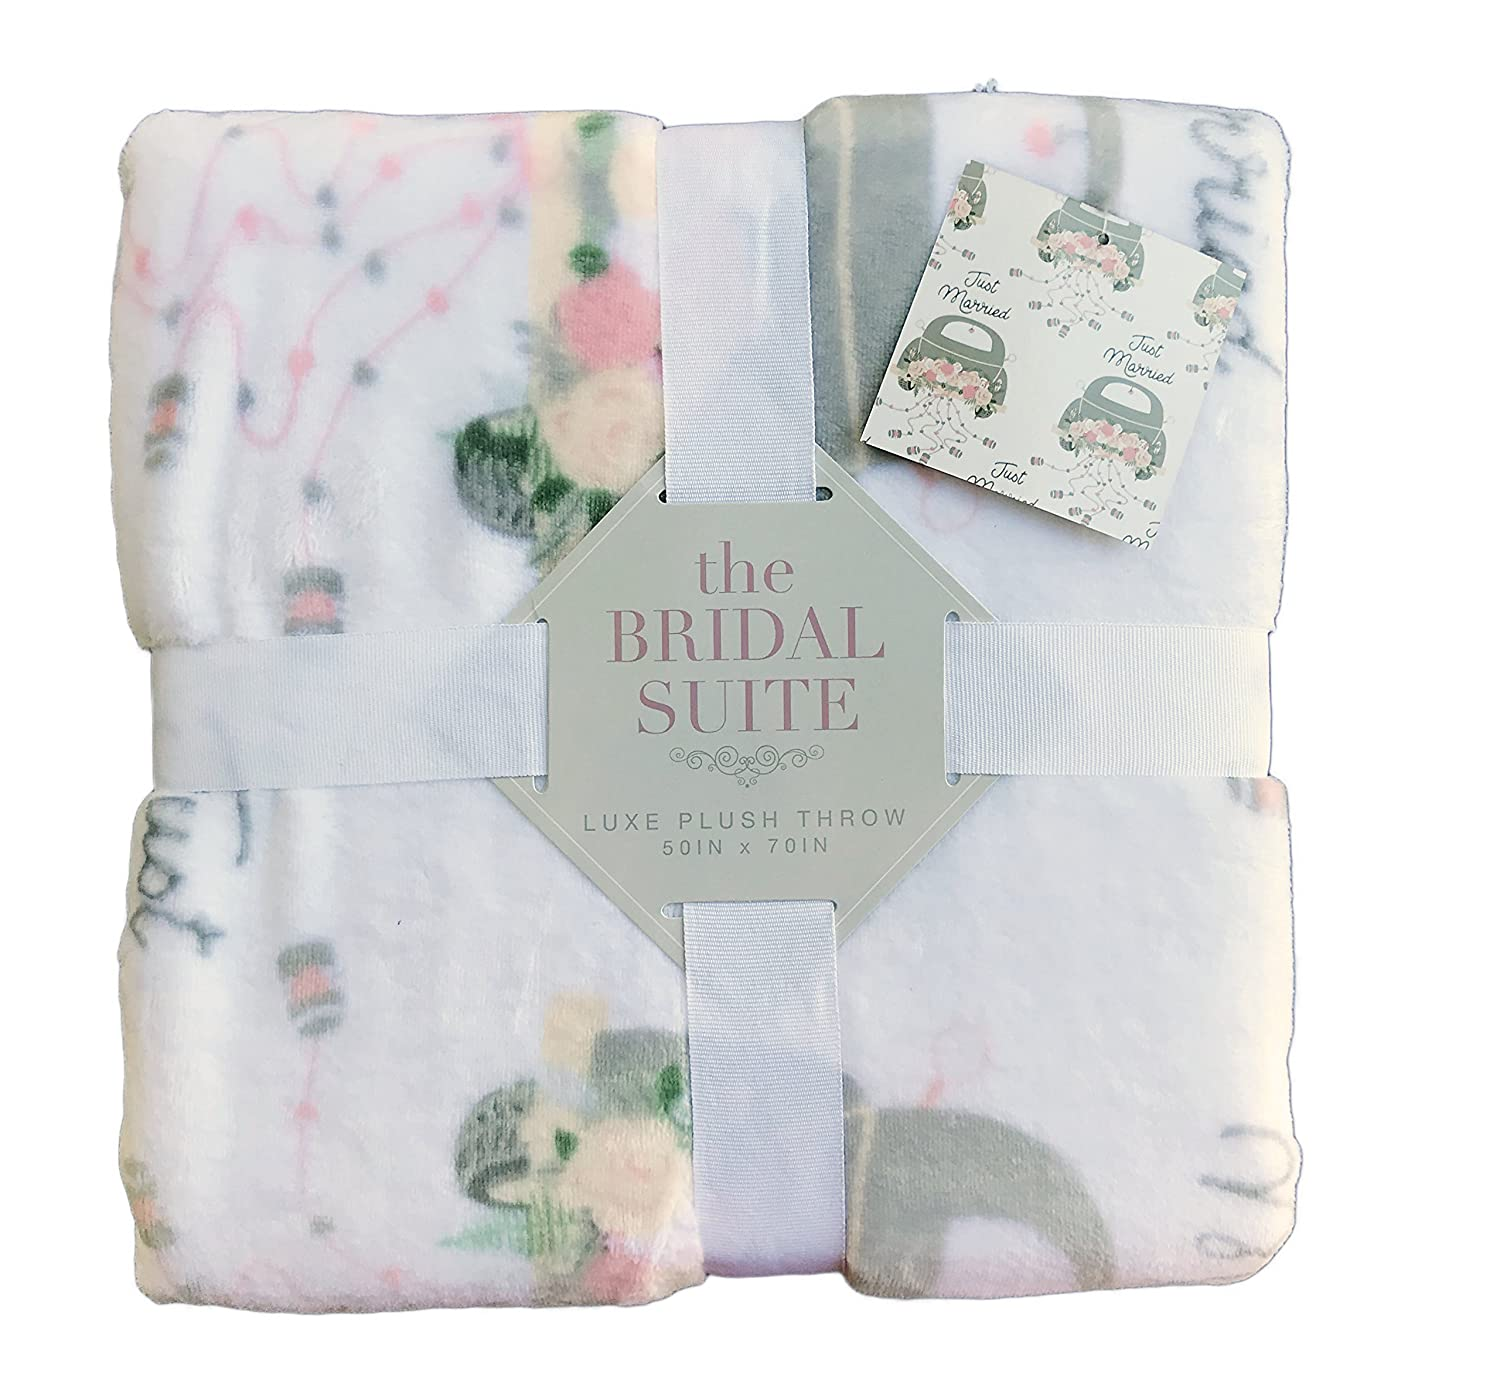 The Bridal Suite Just Married Cozy Luxe Plush Throw Blanket 50 x 70